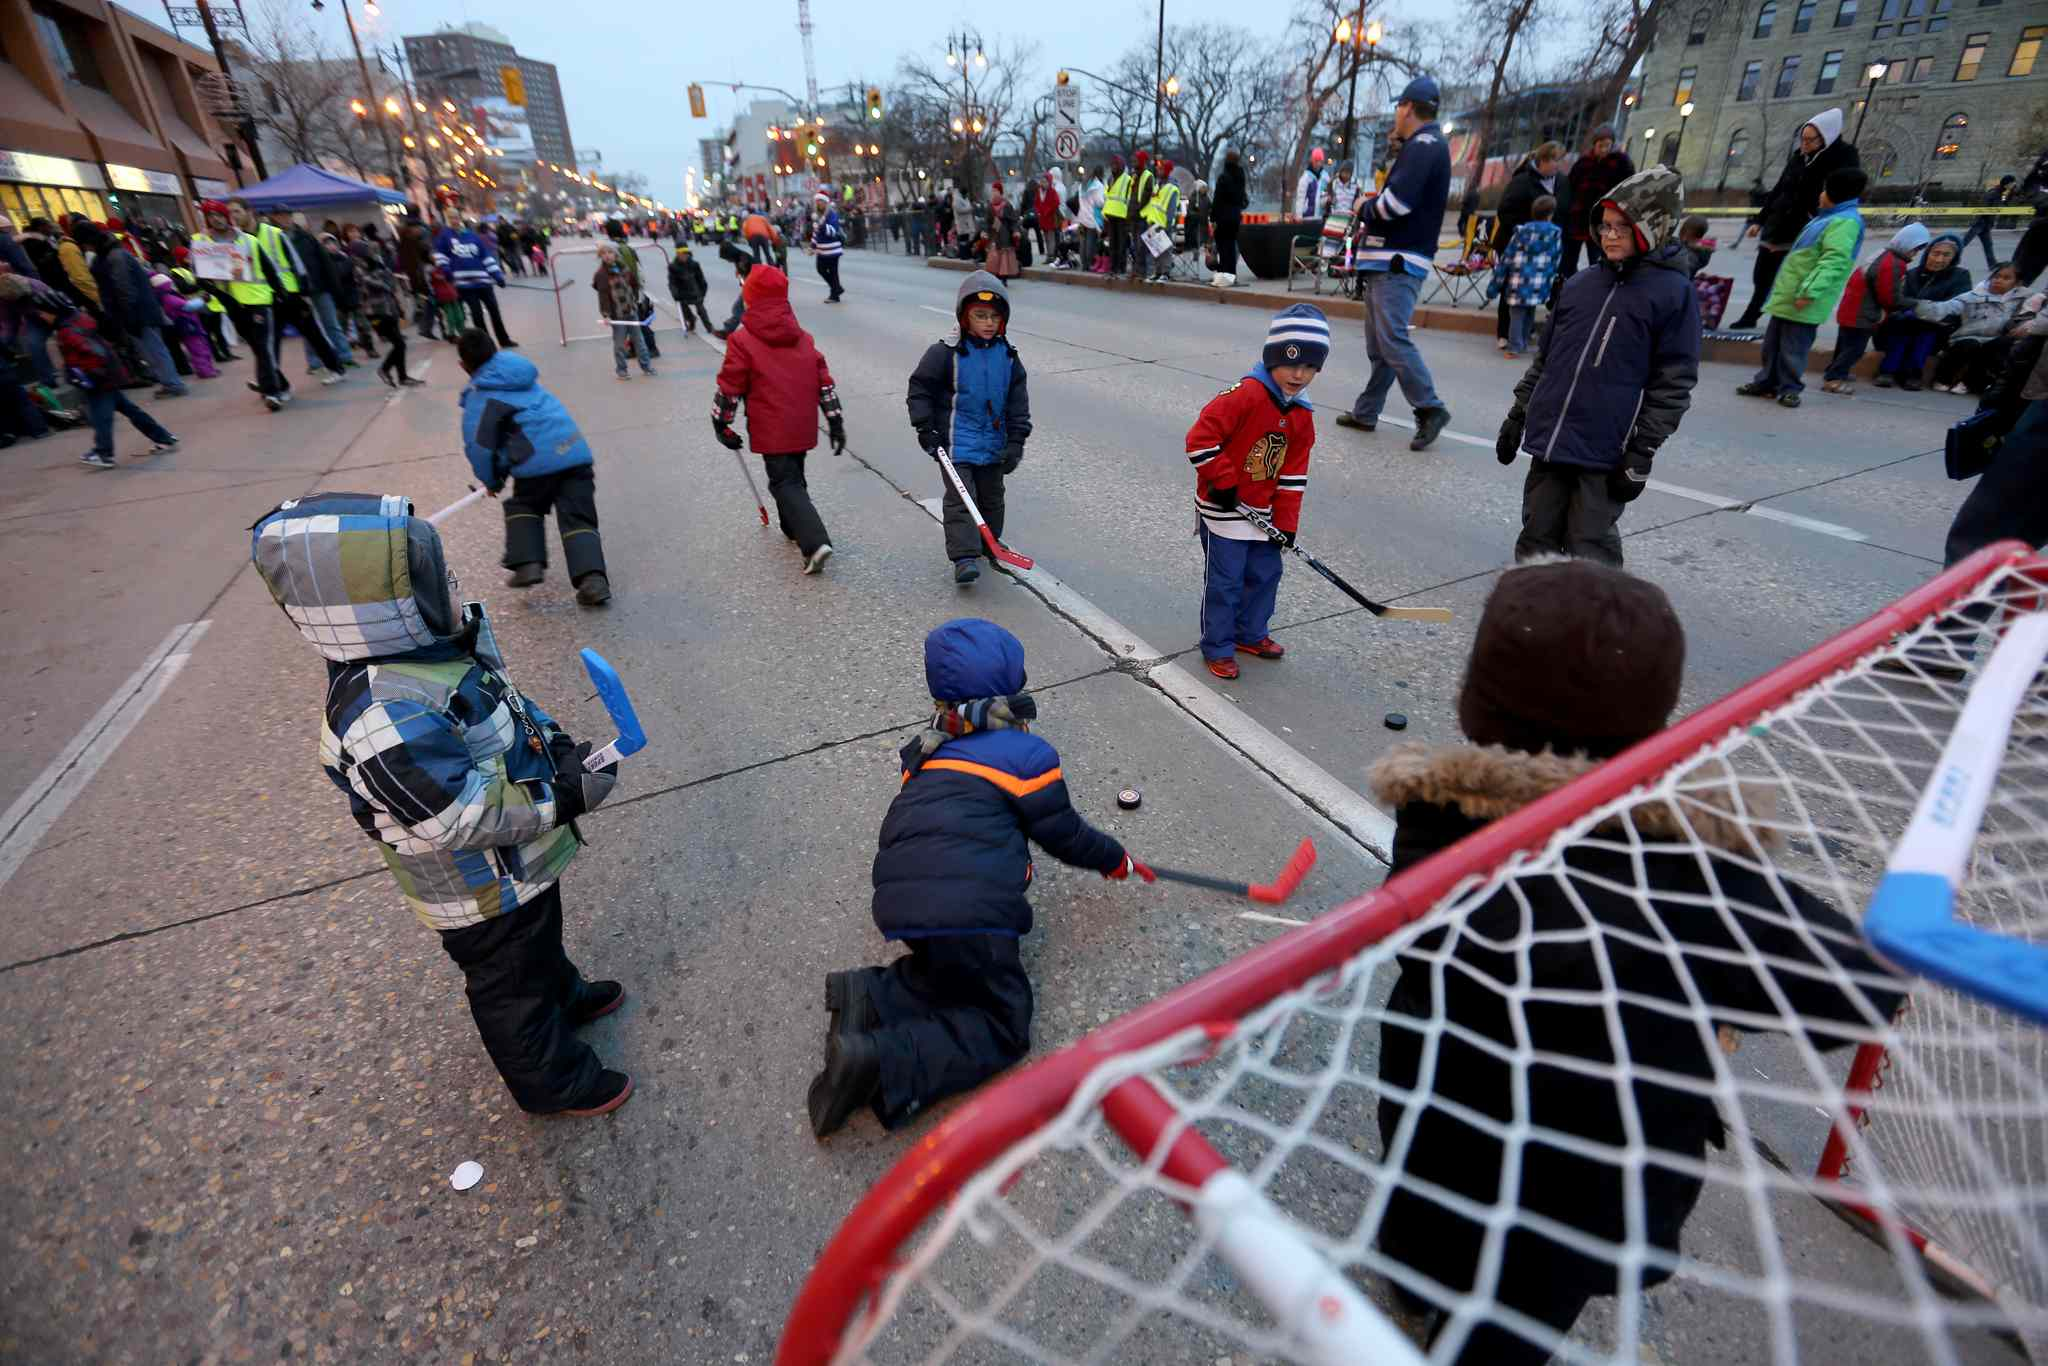 A game of street hockey before the parade keeps kids busy.